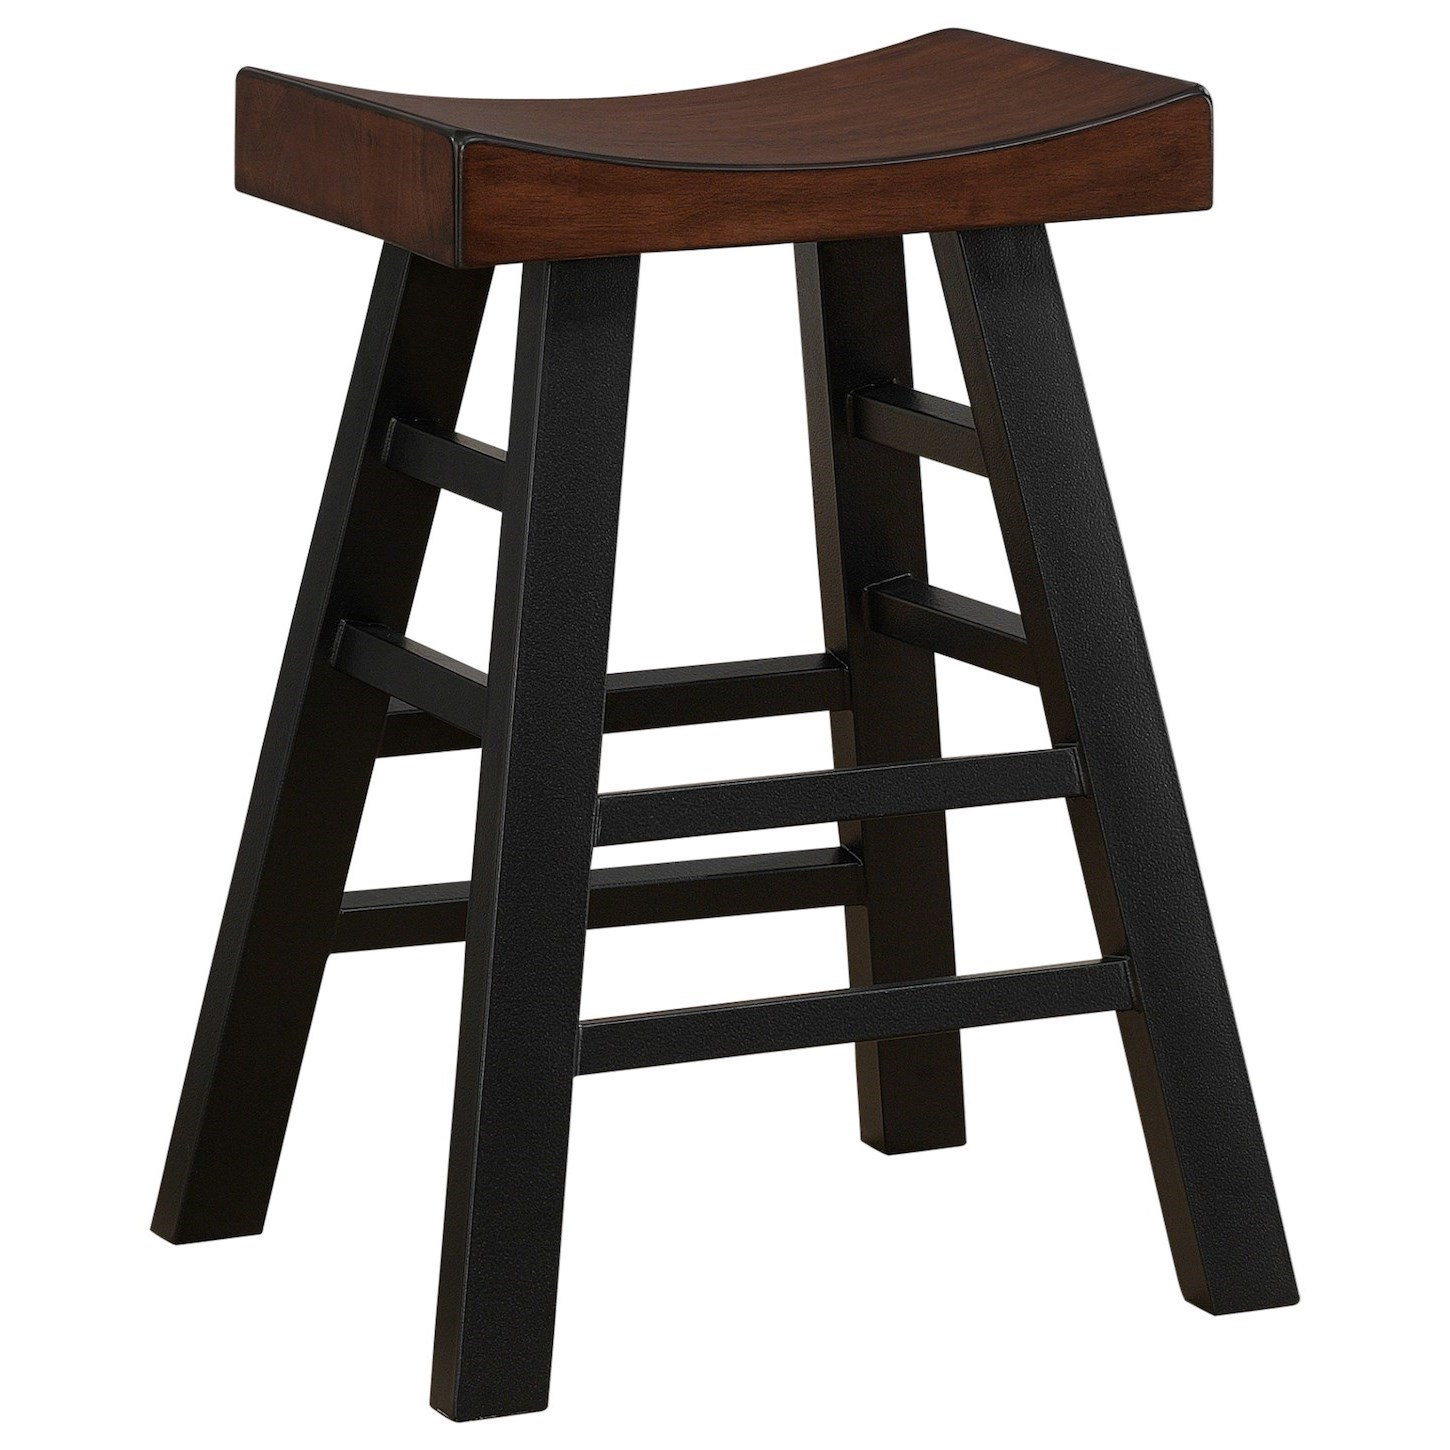 American Heritage Billiards Cheyenne Backless Two Tone Rustic Bar Stool